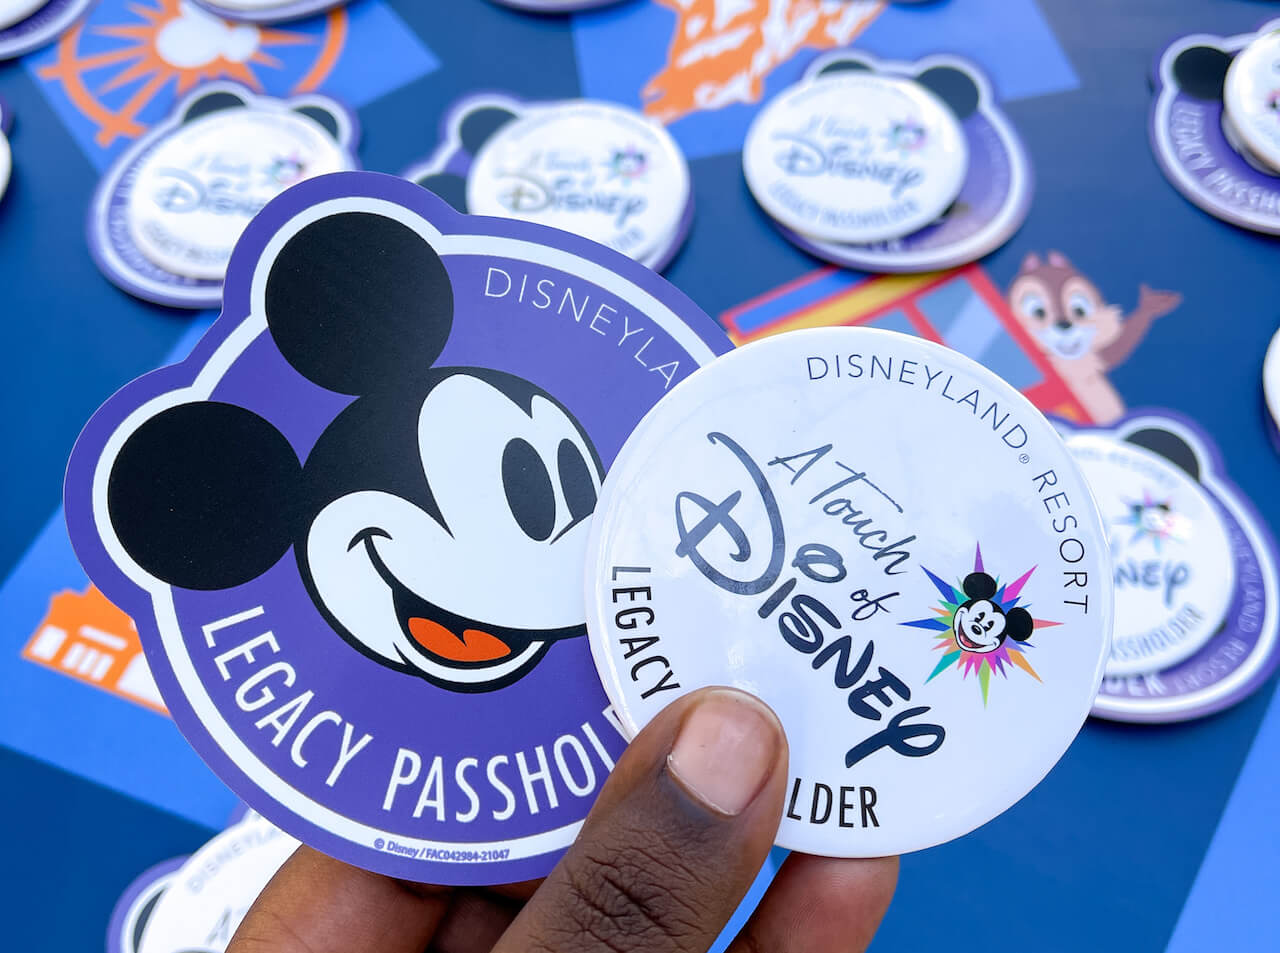 Complimentary Legacy Passholder botton and magnet for A Touch of Disney